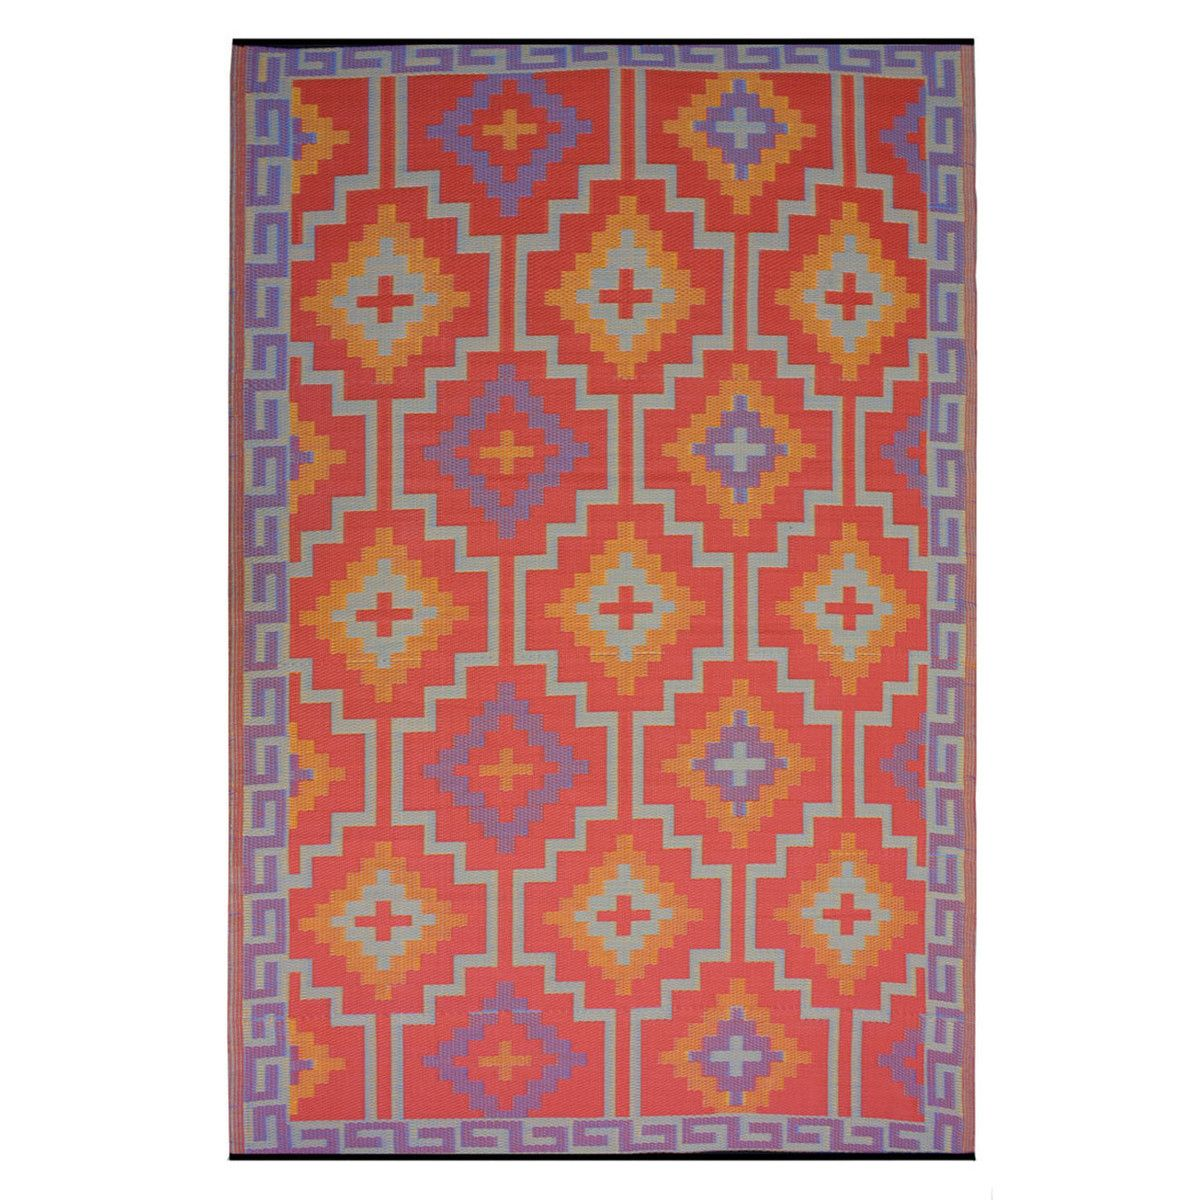 62 Fab Com Lhasa 6x9 Orange Fab Habitat Outdoor Rugs Rugs